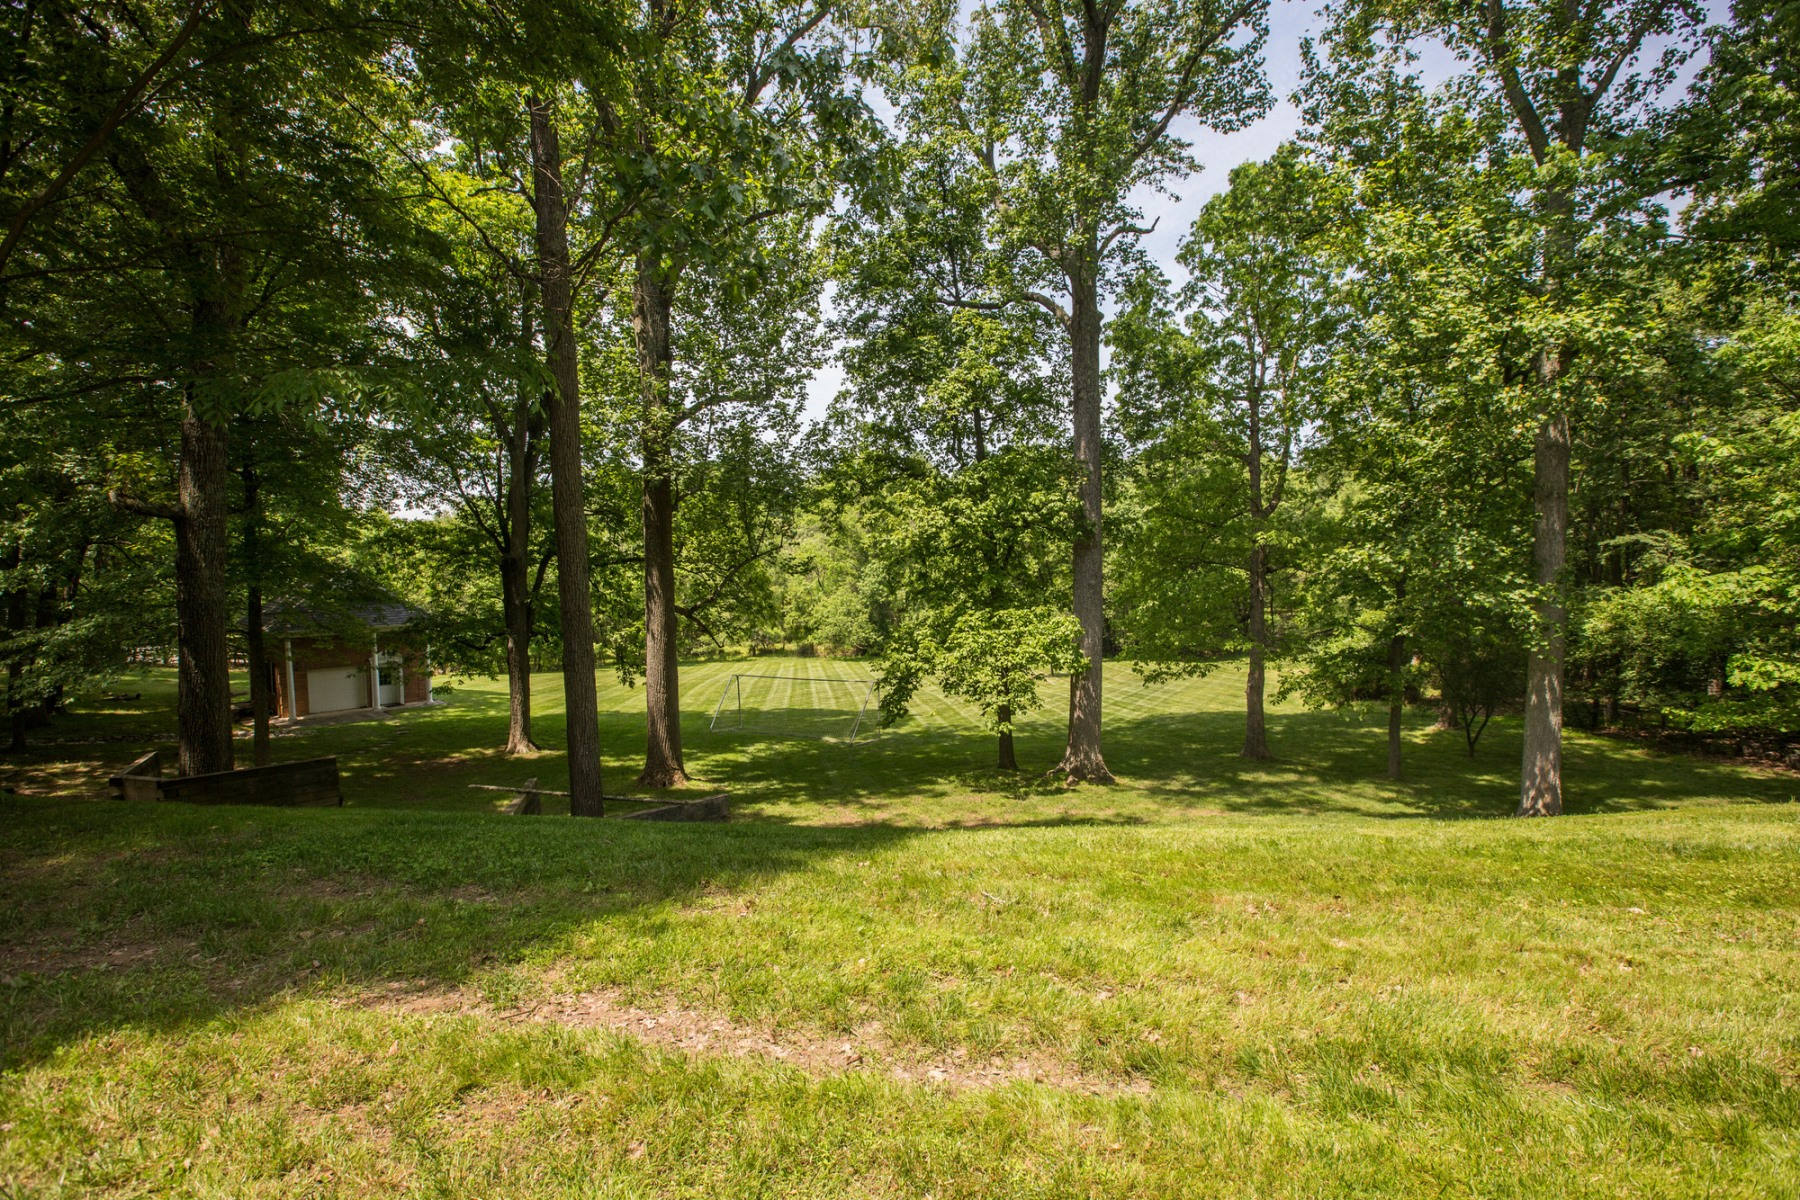 Additional photo for property listing at 13850 Russell Zepp Drive, Clarksville  Clarksville, 메릴랜드 21029 미국